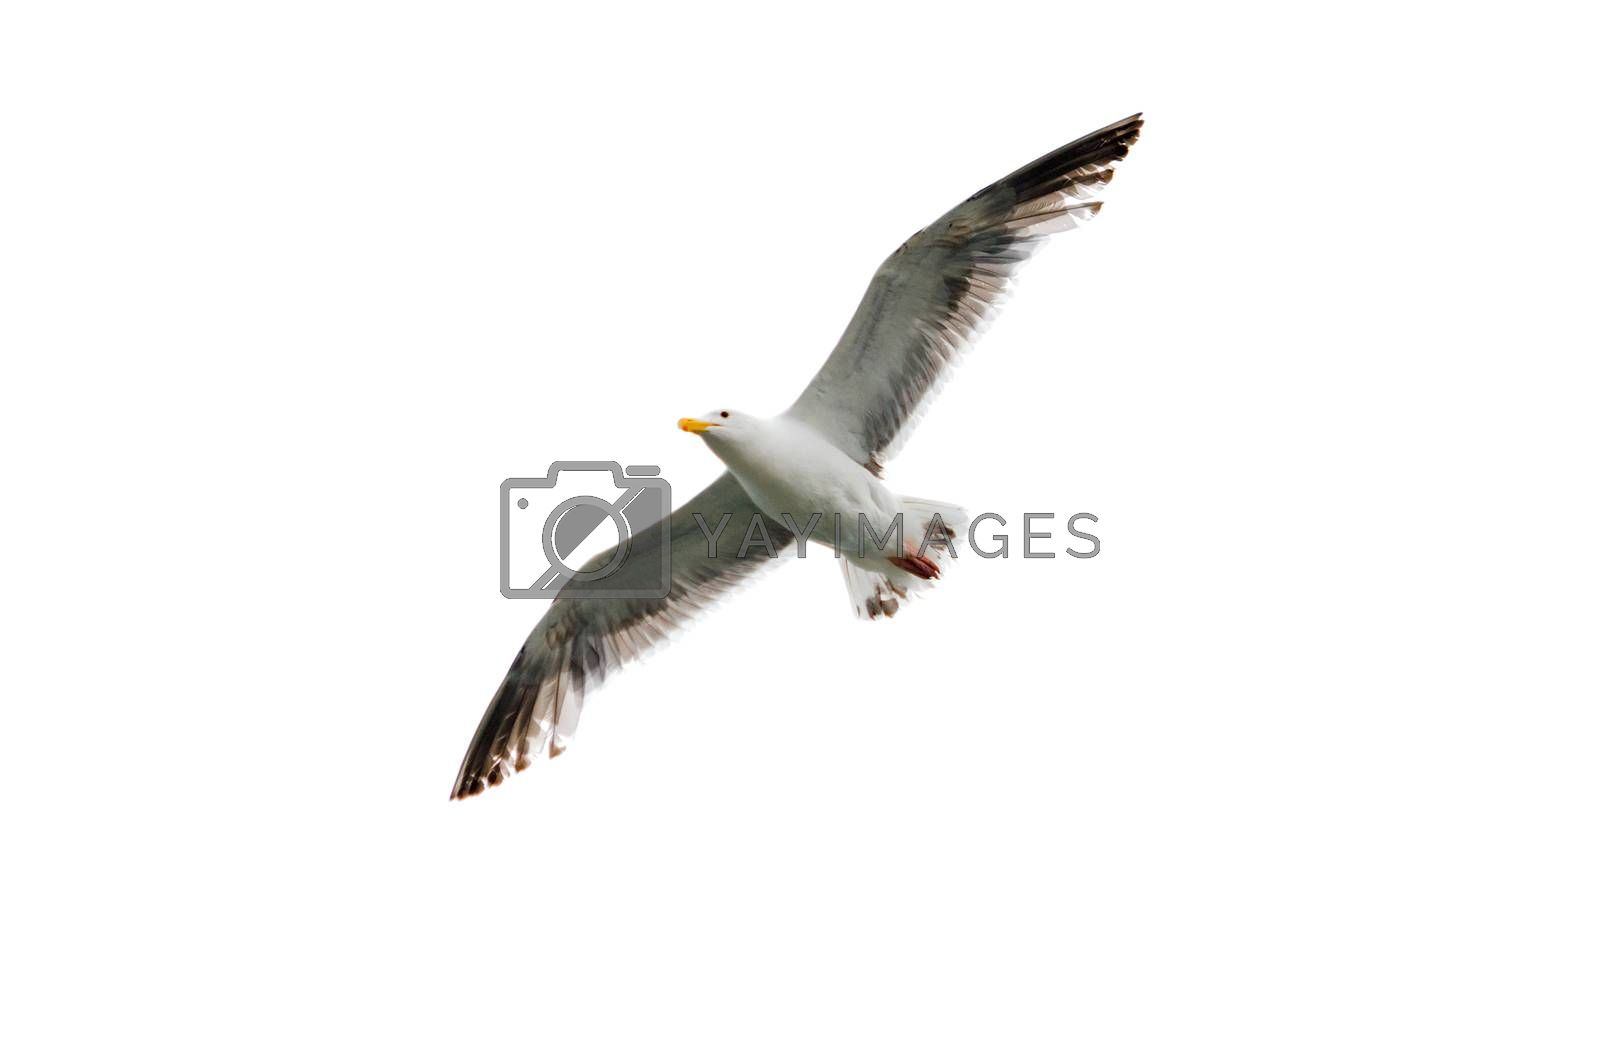 Flying seagull with wings spread open against a white background